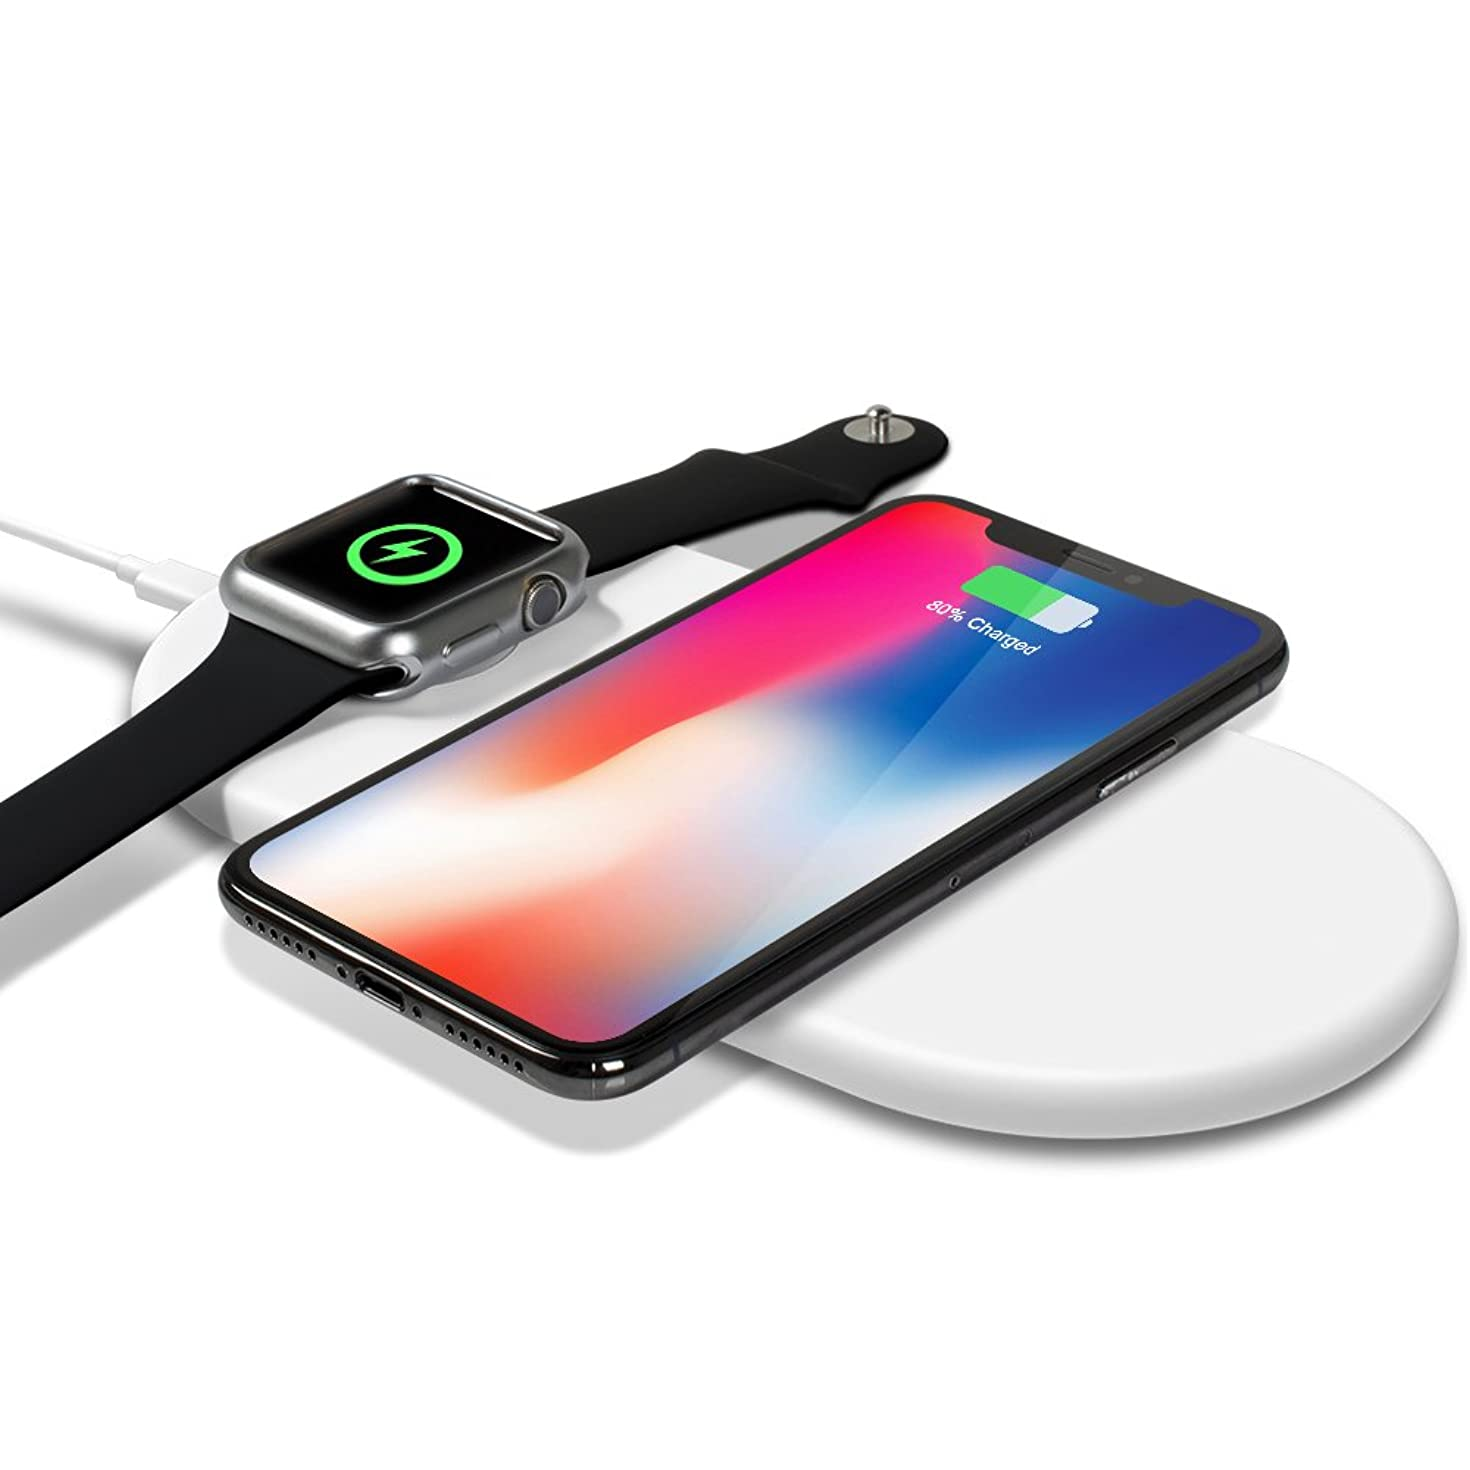 Smartwatch Wireless Charger,top4cus Charging Pad,Ultra Slim 2 in 1 Qi Fast Wireless Charging Stand Compatible iPhone XS/XR/X/8/8plus Apple Watch Series 4/3/2/1, Airpods, Samsung Galaxy - White